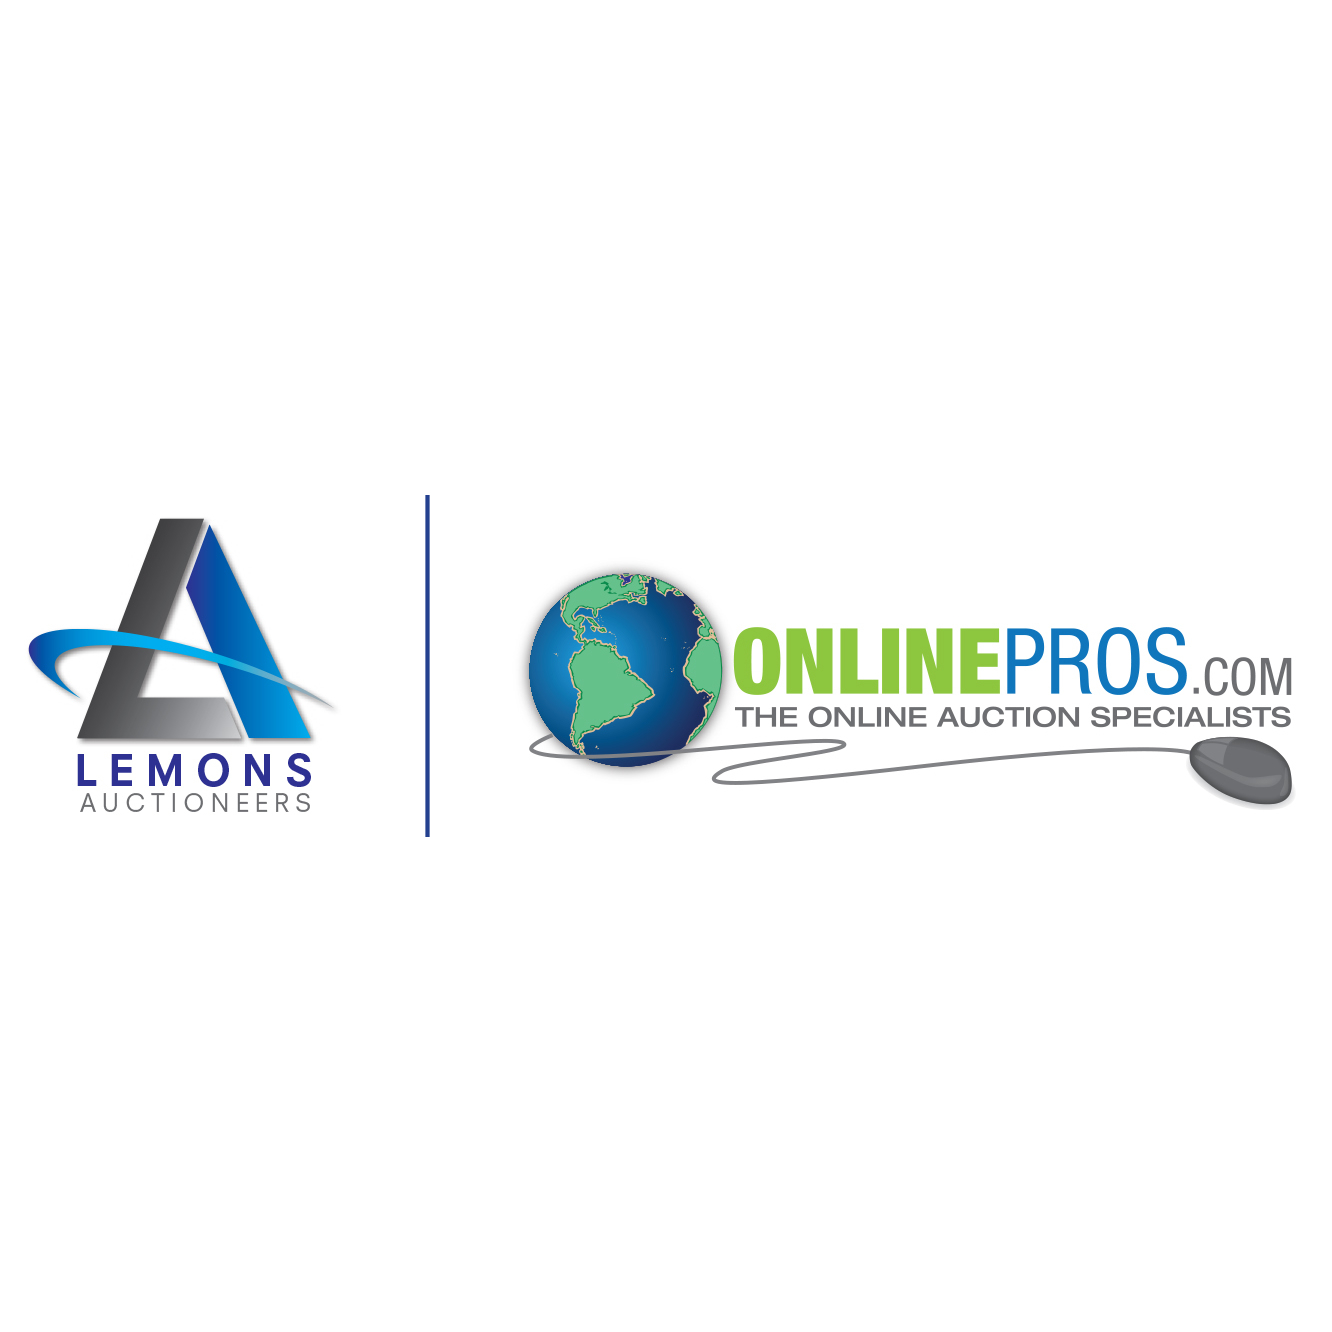 Lemons Auctioneers, LLP and Online Pros